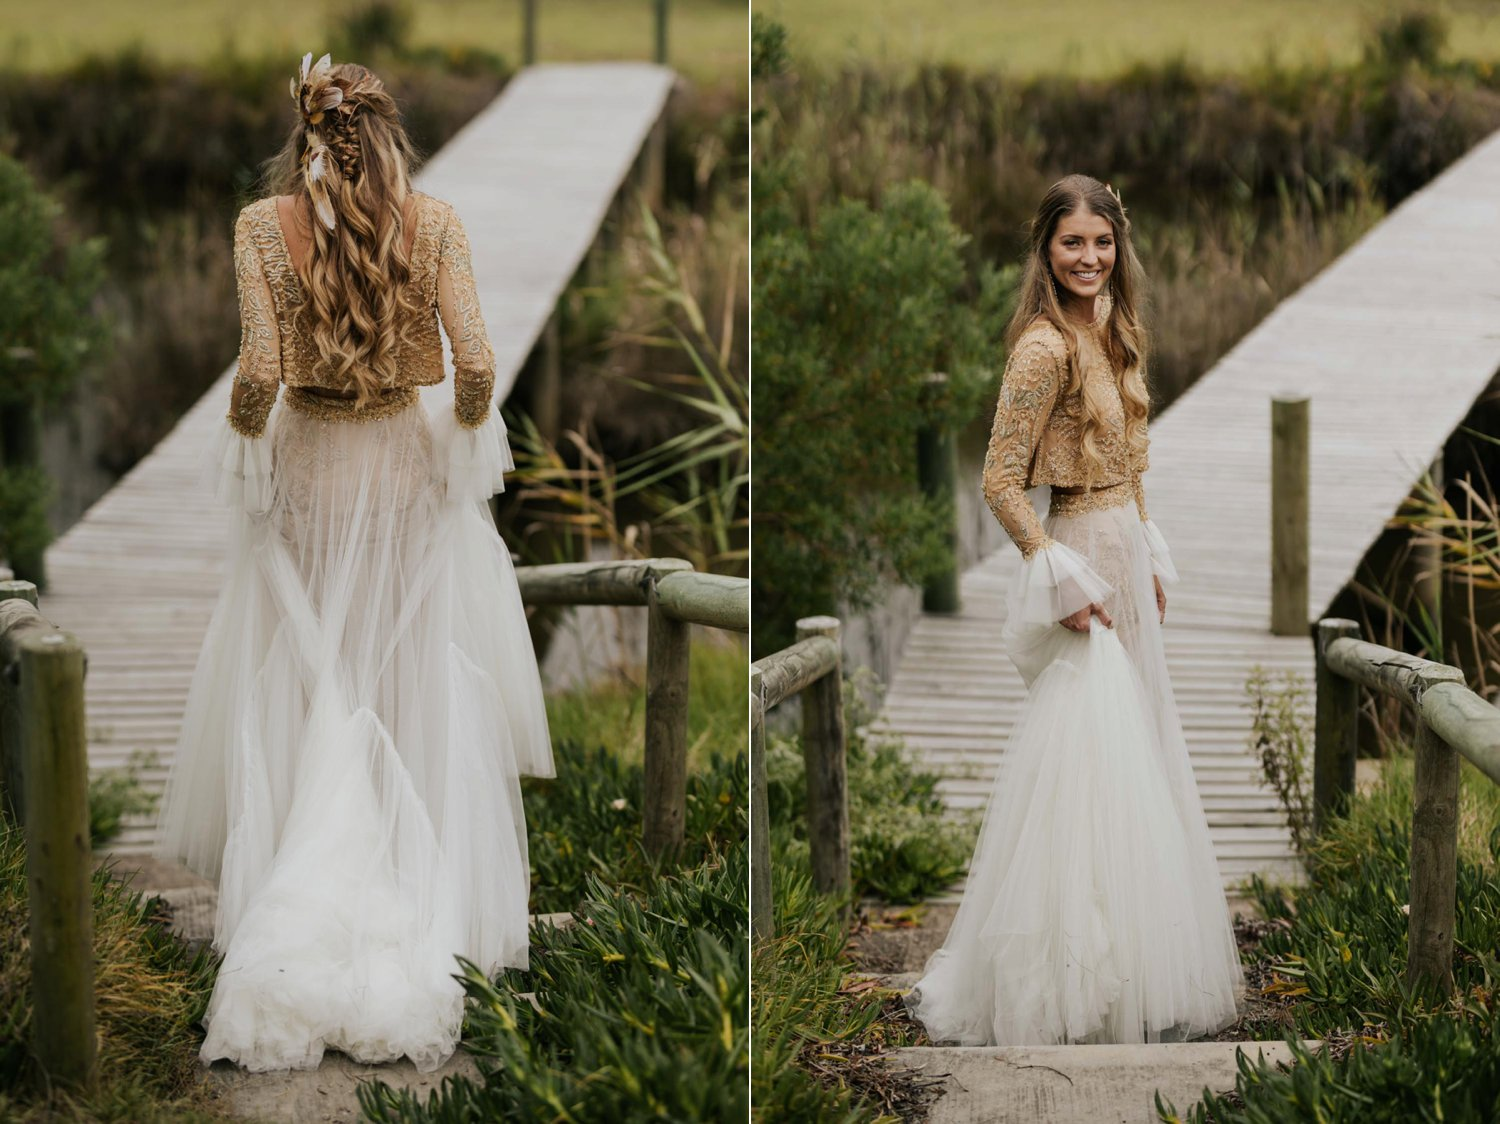 Bohemian bride with long curly blonde hair wears two piece gold and cream long sleeve wedding dress and feathers and plait in her hair